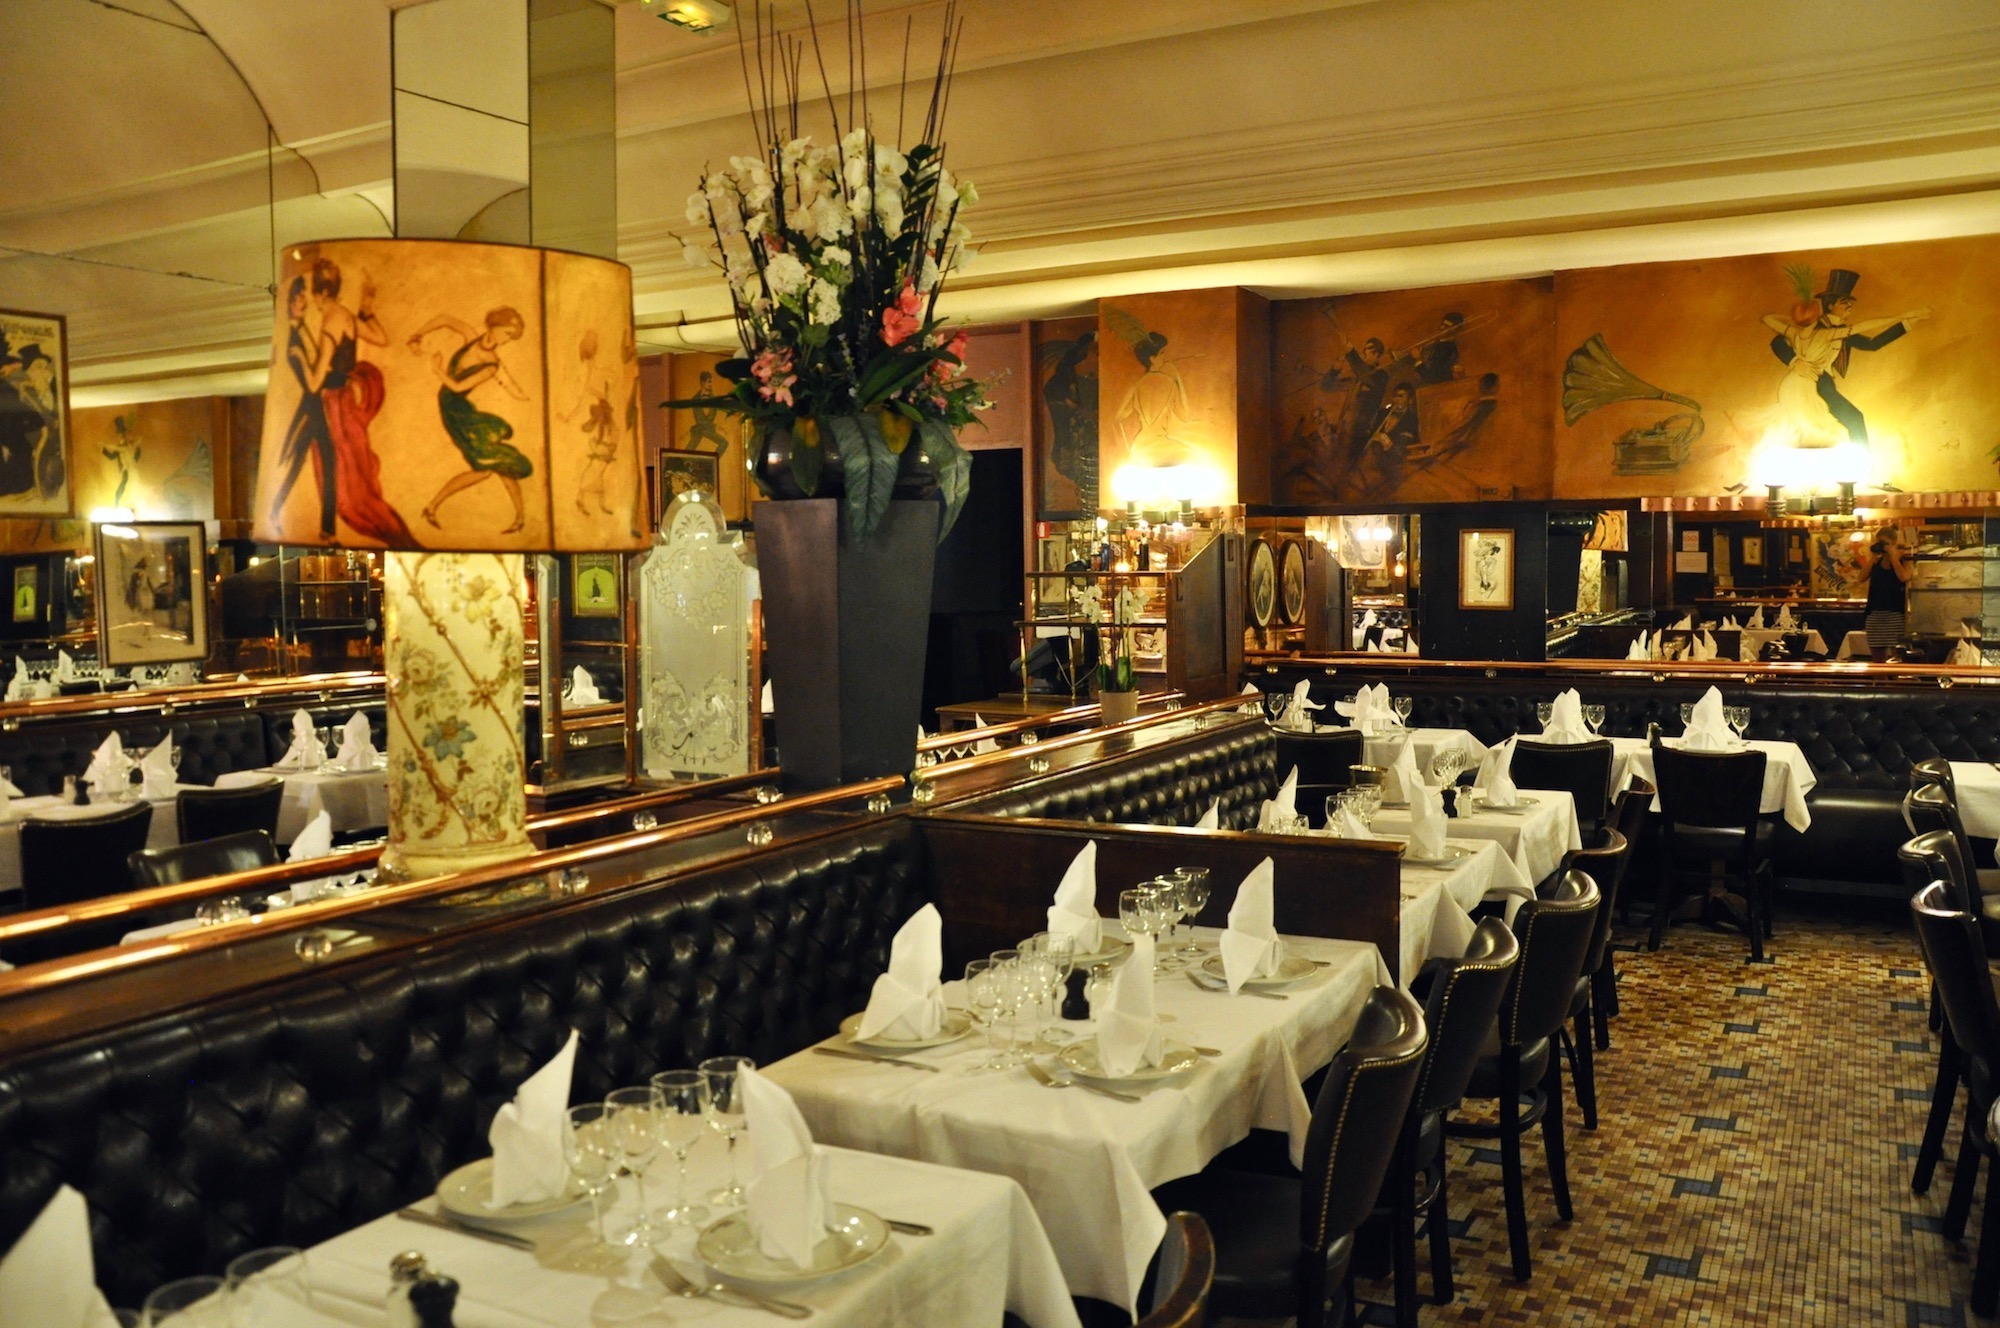 Inside the beautiful traditional brasserie Terminus Nord in Paris which serves classic French food, comes with quilted buttoned banquettes, brass fixtures and art on the walls.